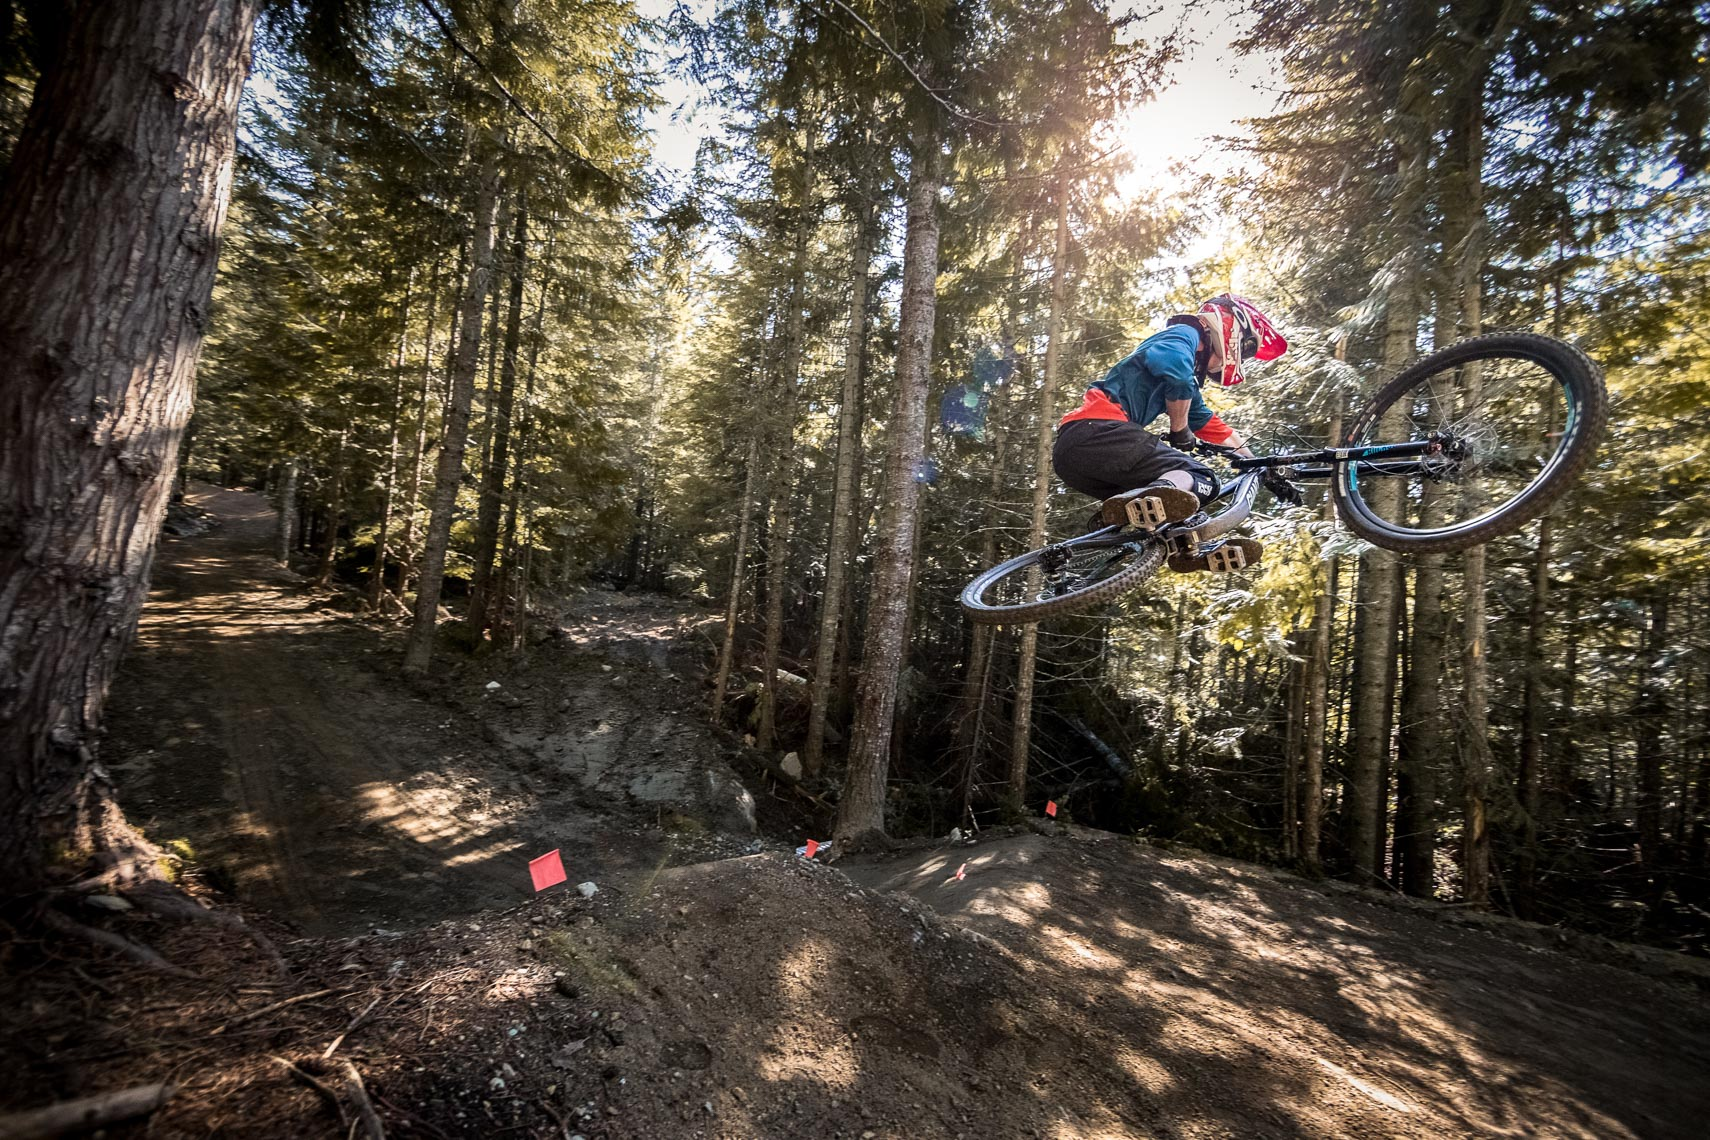 Mountain bike action photography from the Whistler bike park